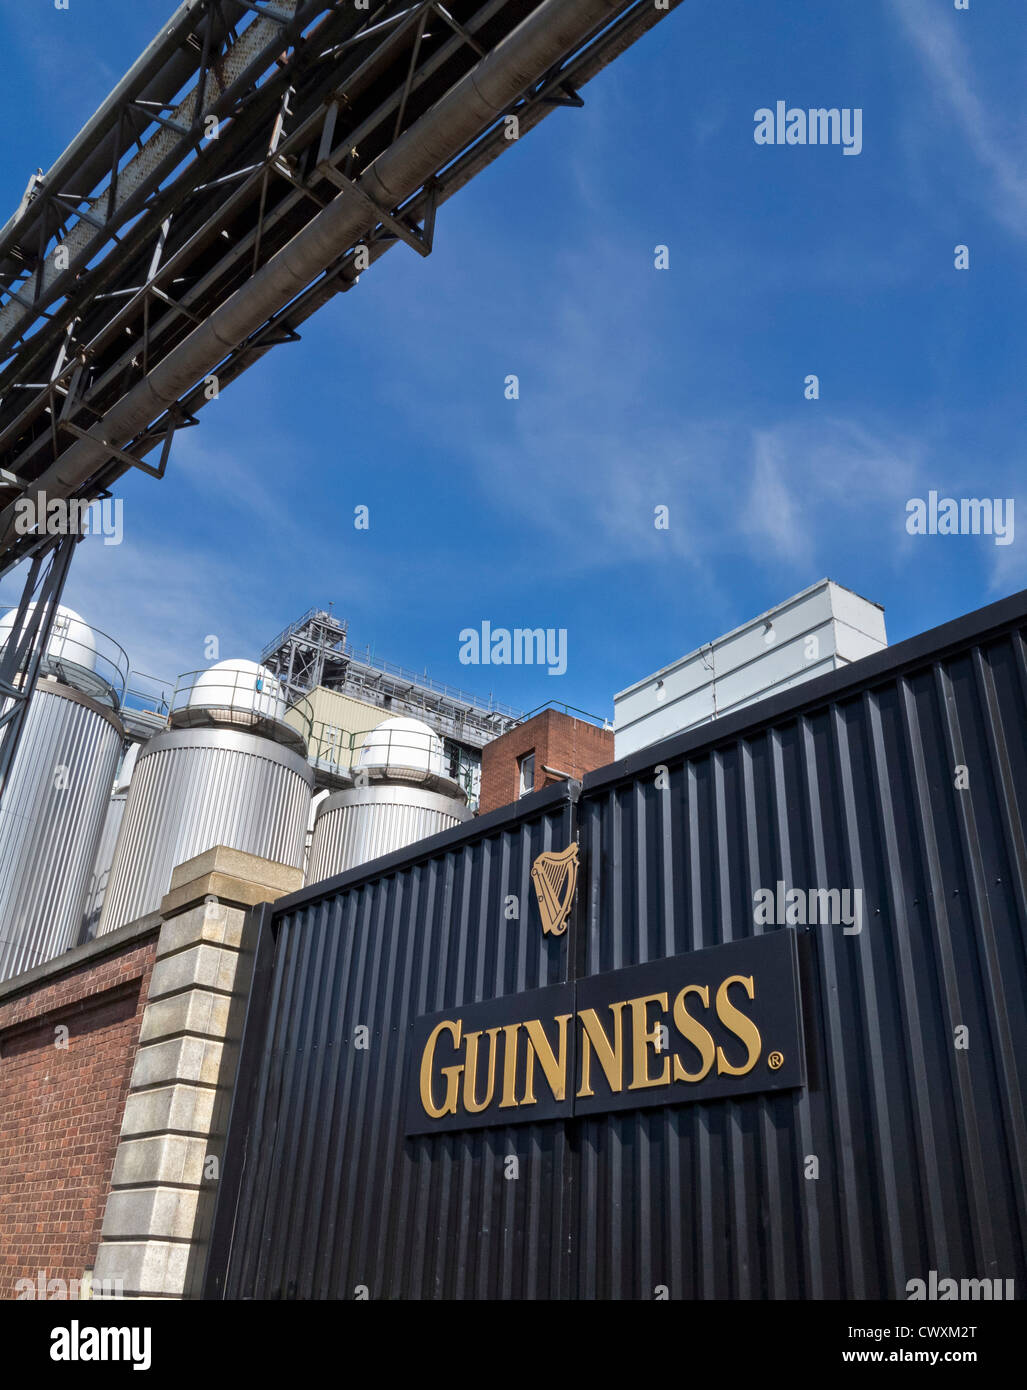 Guinness brewery in Dublin, Ireland - Stock Image